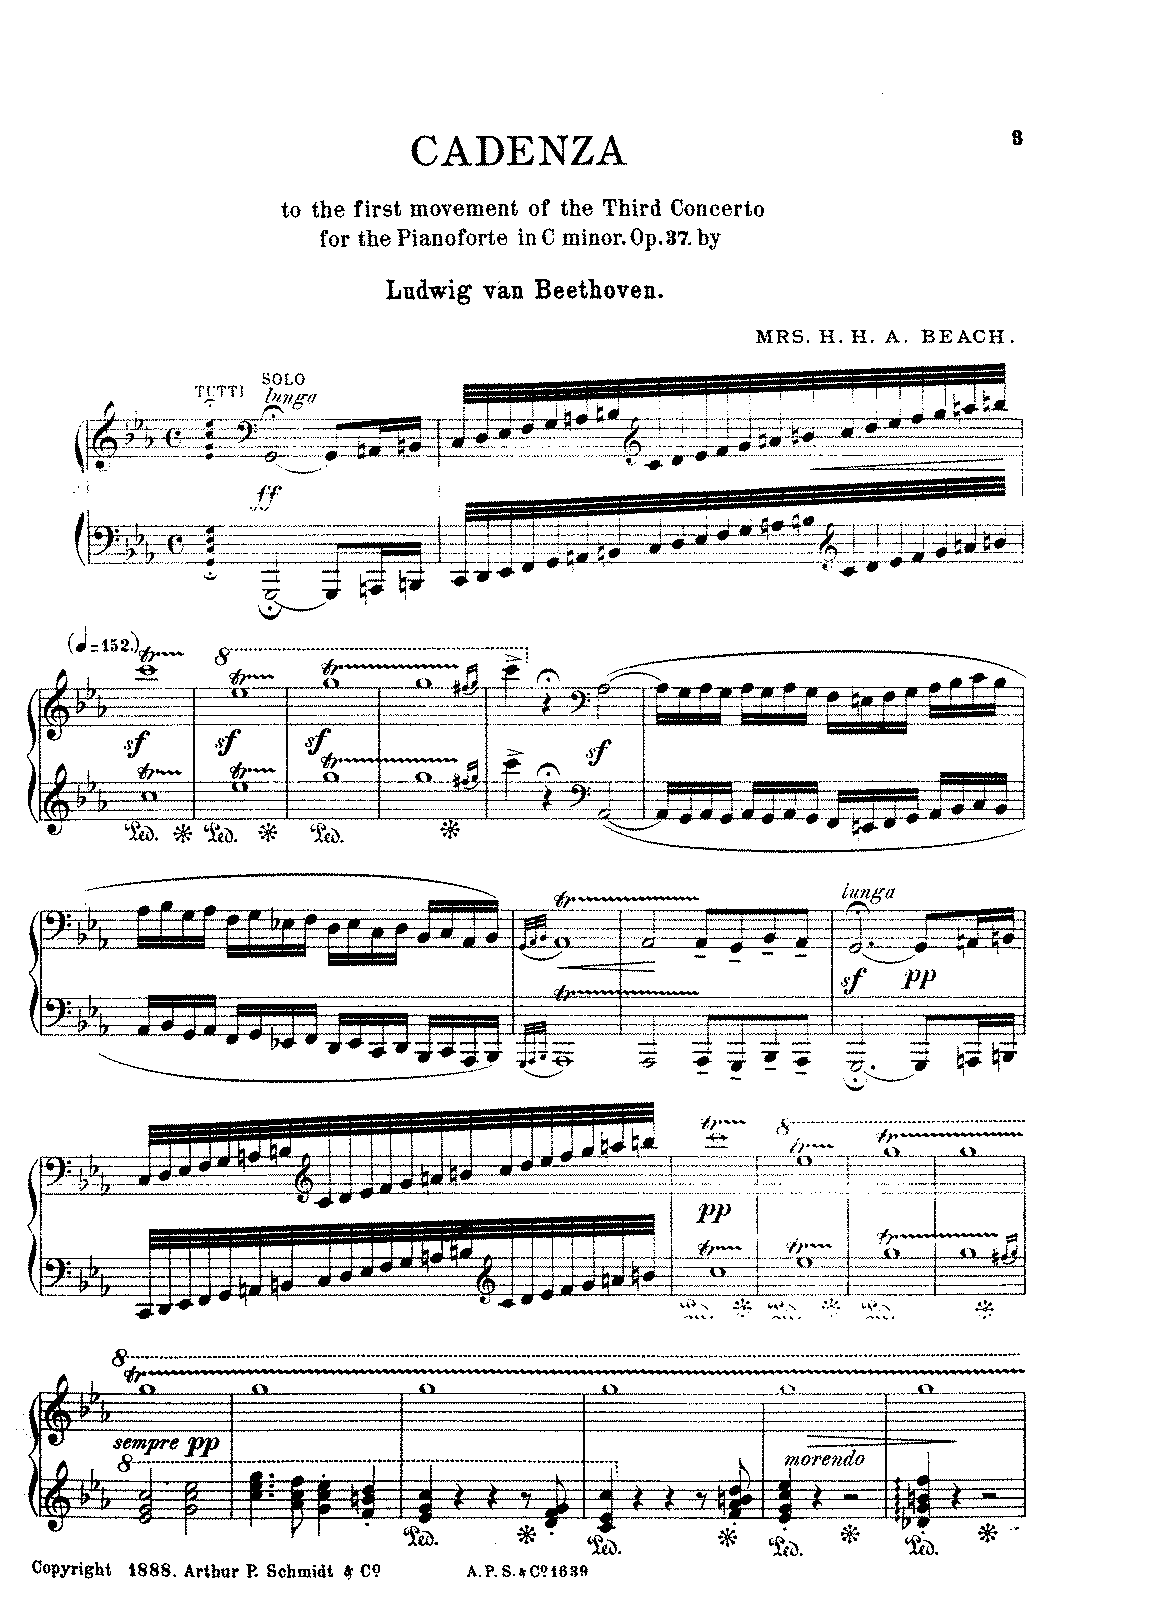 PMLP64330-Beach - Cadenza to Beethoven Piano Concerto No. 3, Op. 37.pdf